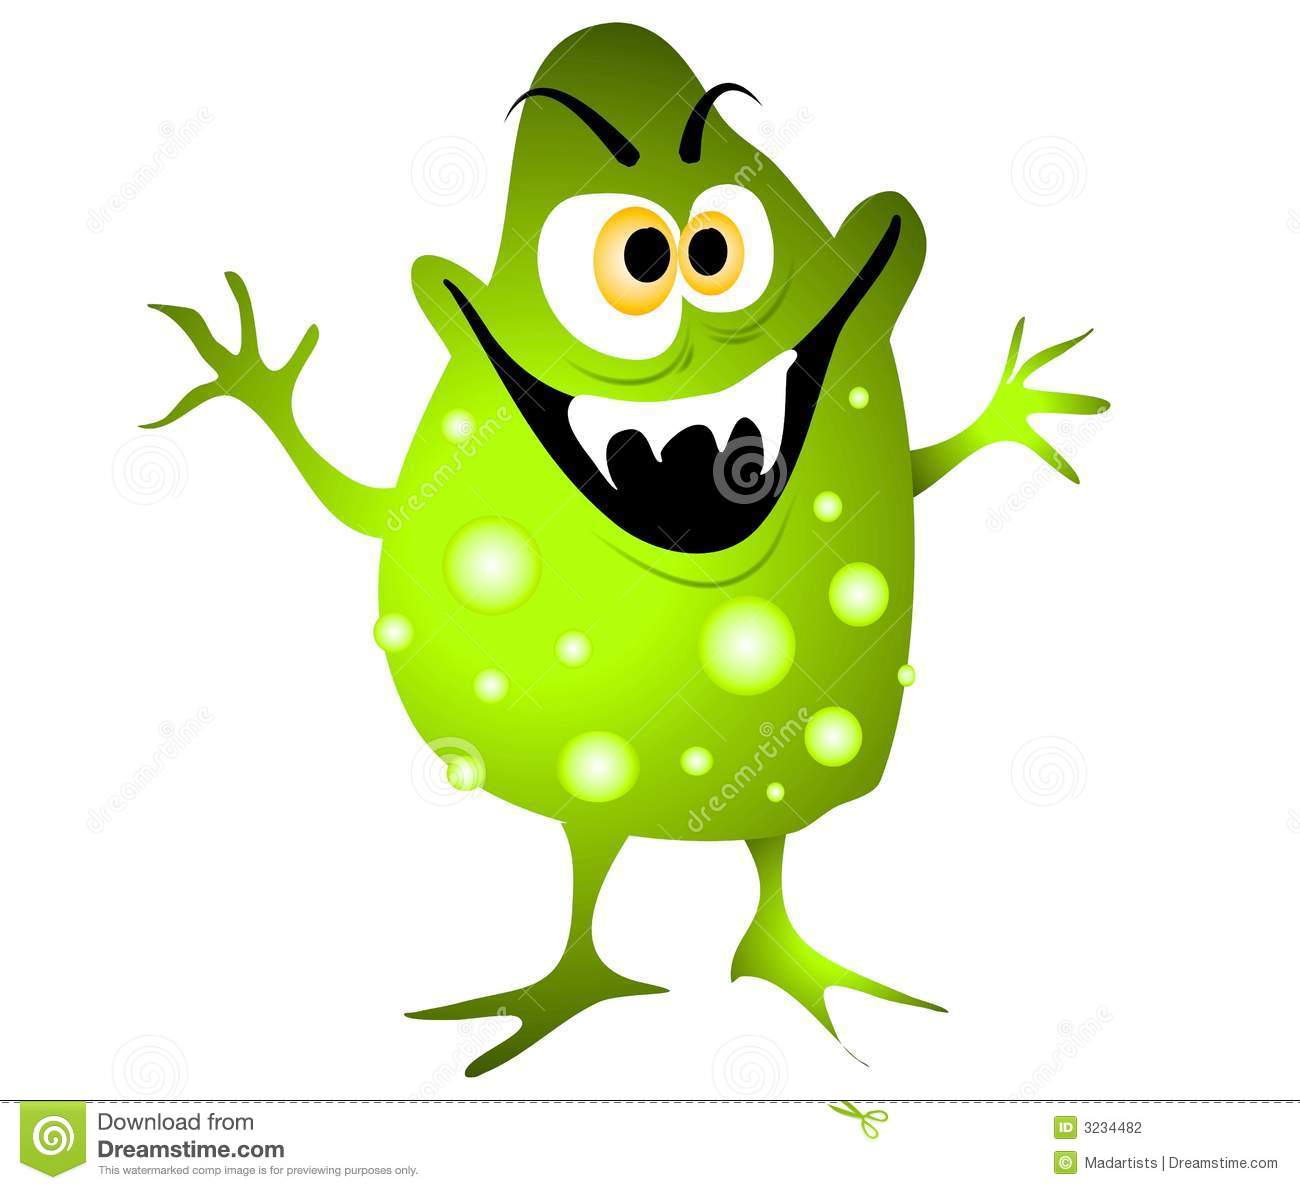 Germs clipart #16, Download drawings